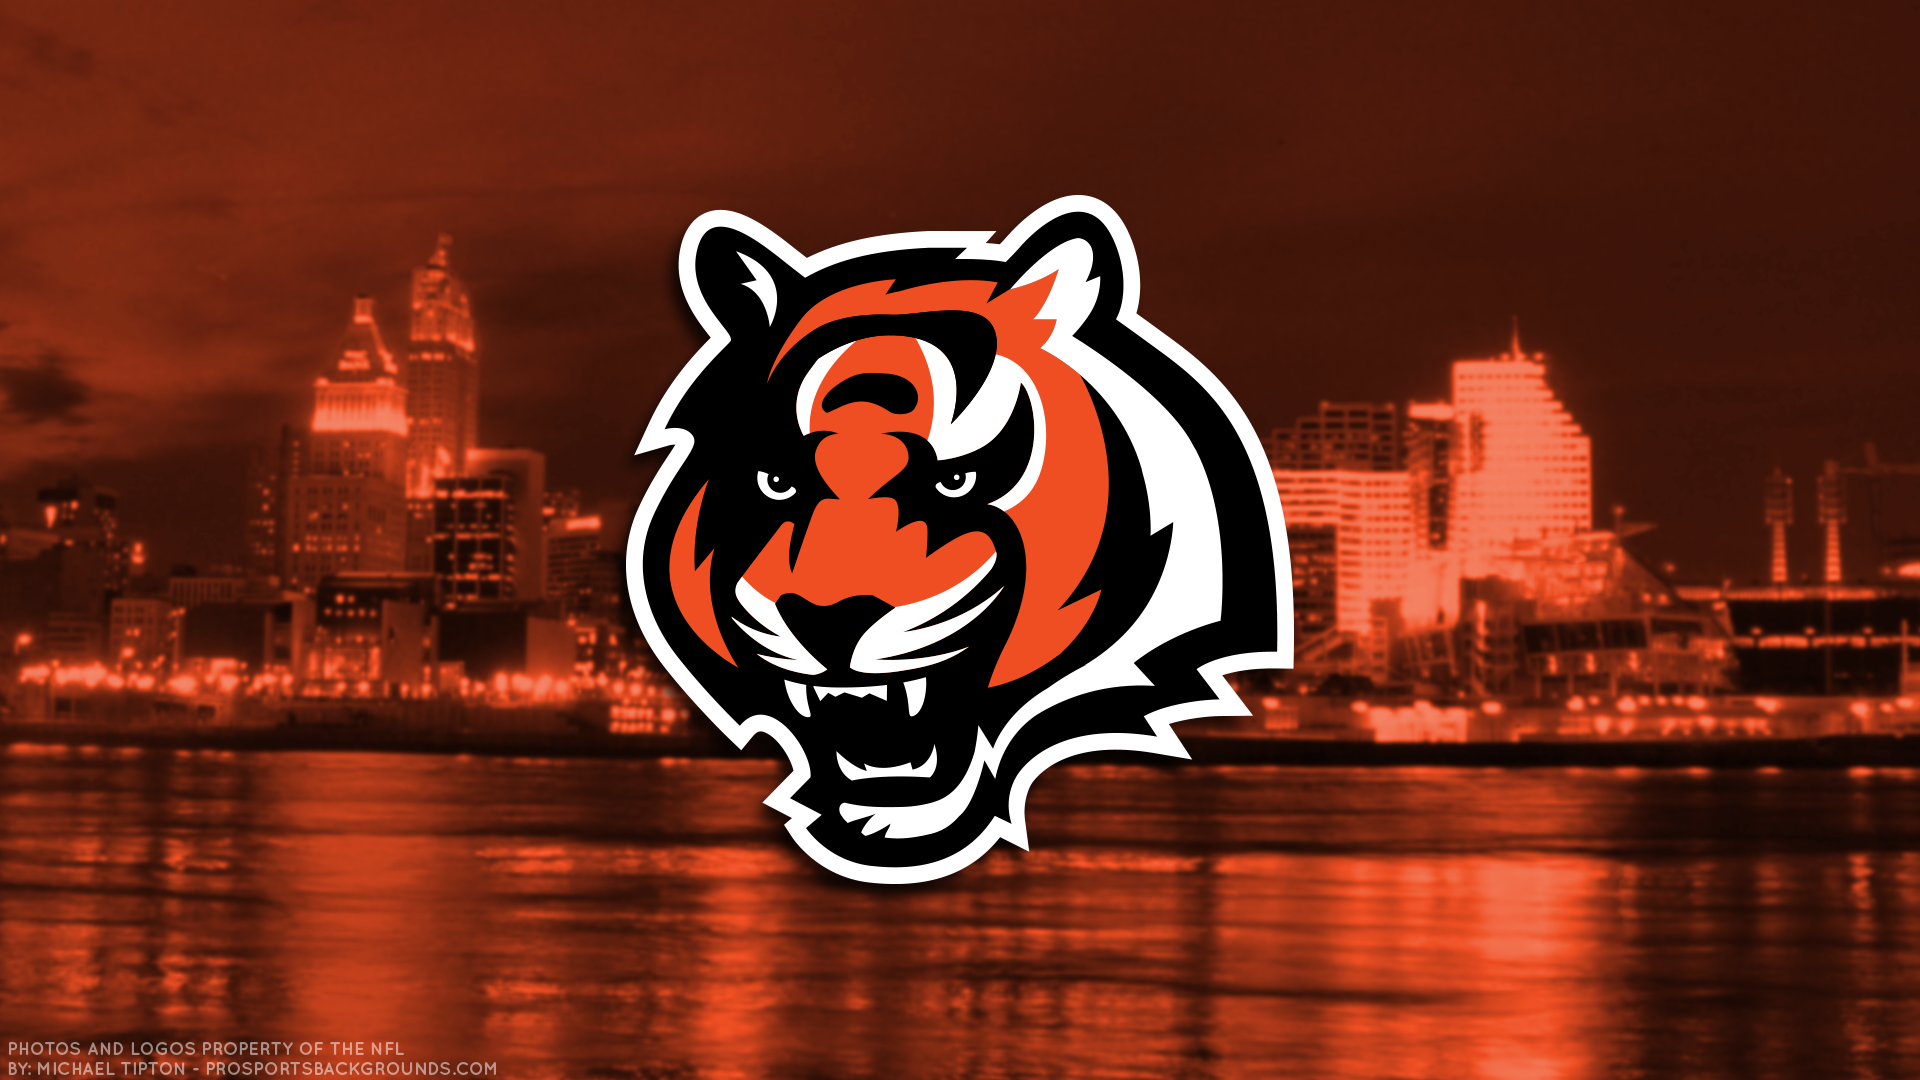 The Cincinnati Bengals announced on Friday that they are parting ways with defensive tackle Chris Baker Baker signed a oneyear deal with the Bengals this offseason